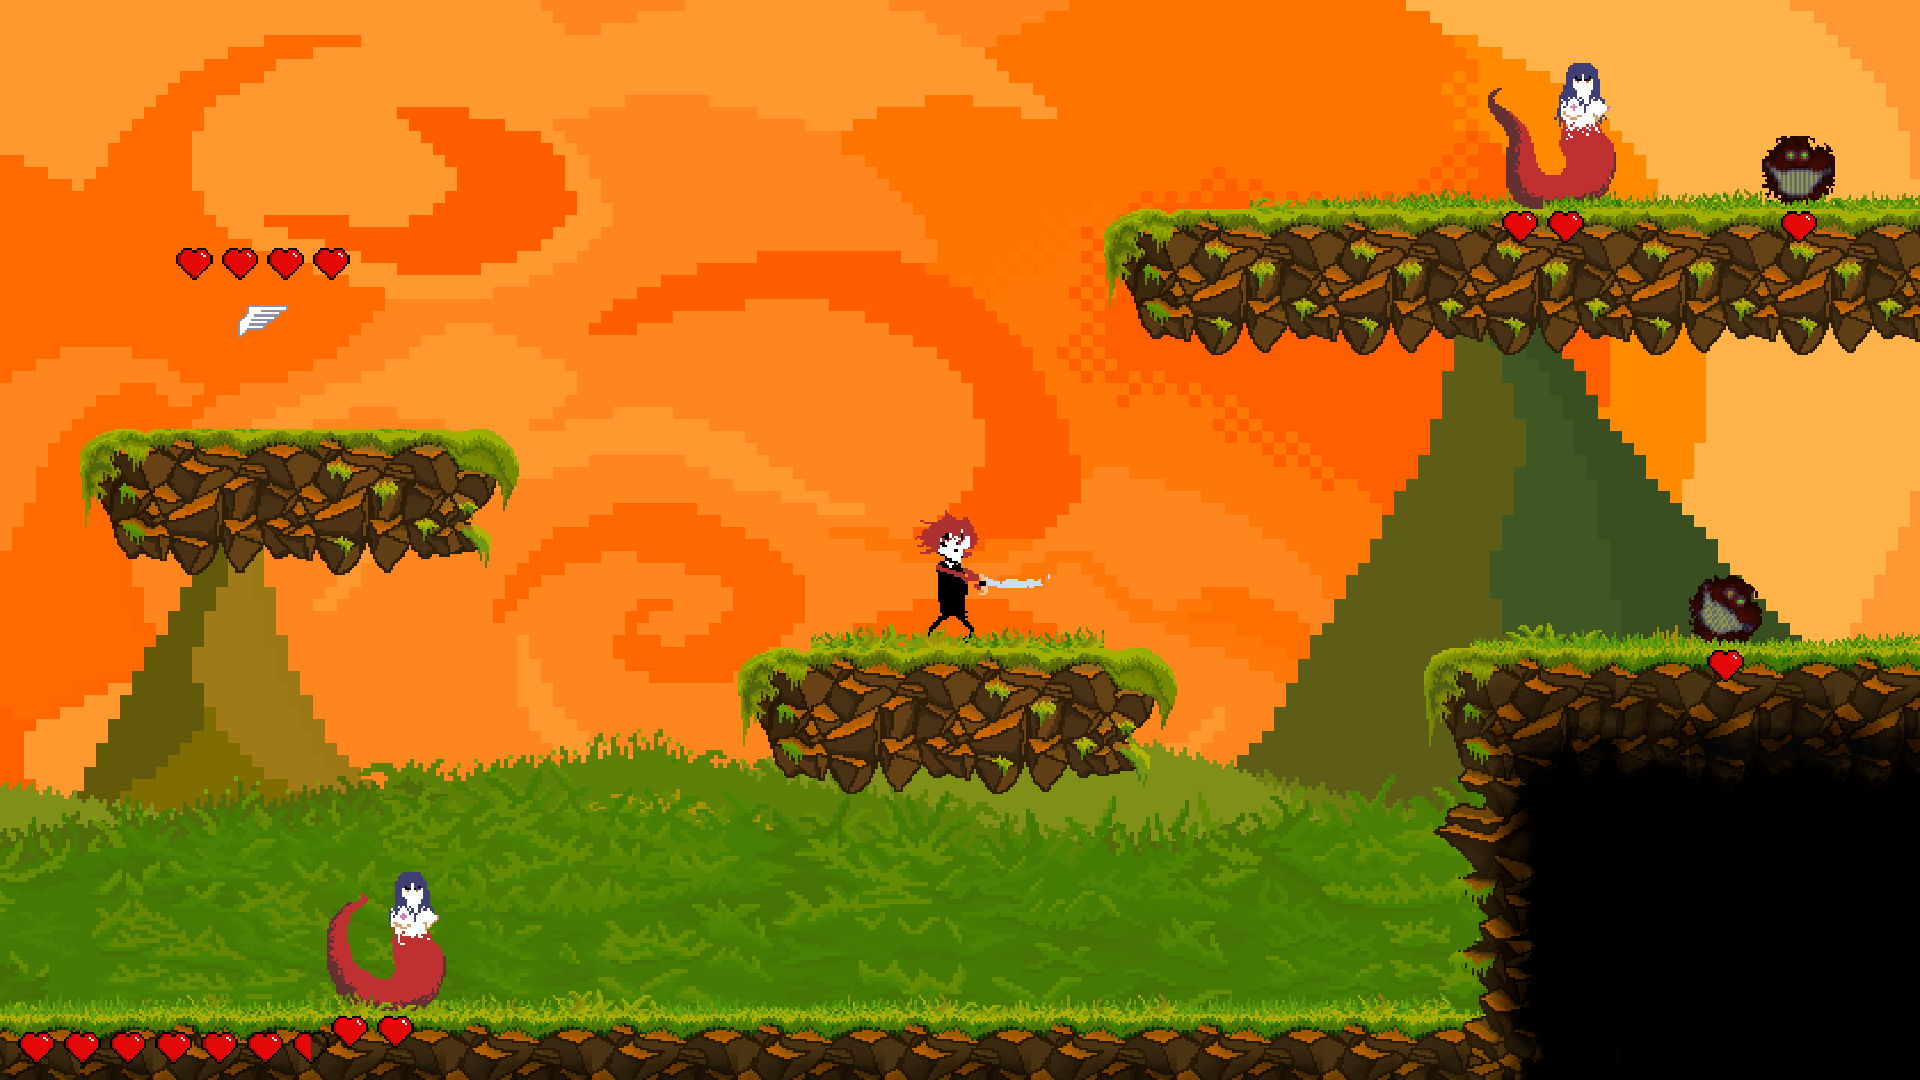 Stabman in the beginning of the overworld level